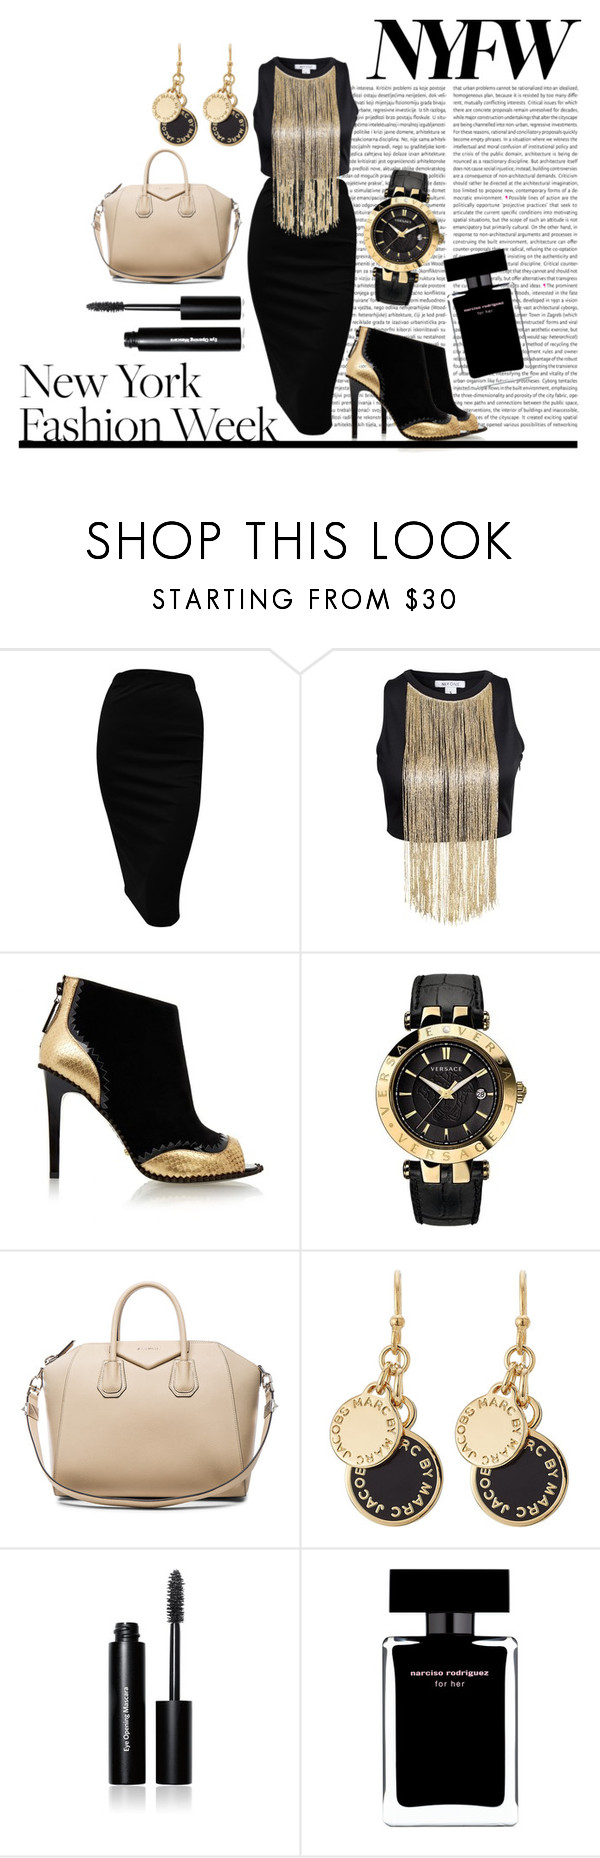 """""""Golden Girl"""" by anemone-ci ❤ liked on Polyvore featuring Kat Maconie, Versace, Givenchy, Marc by Marc Jacobs, Bobbi Brown Cosmetics, Narciso Rodriguez, women's clothing, women, female and woman"""